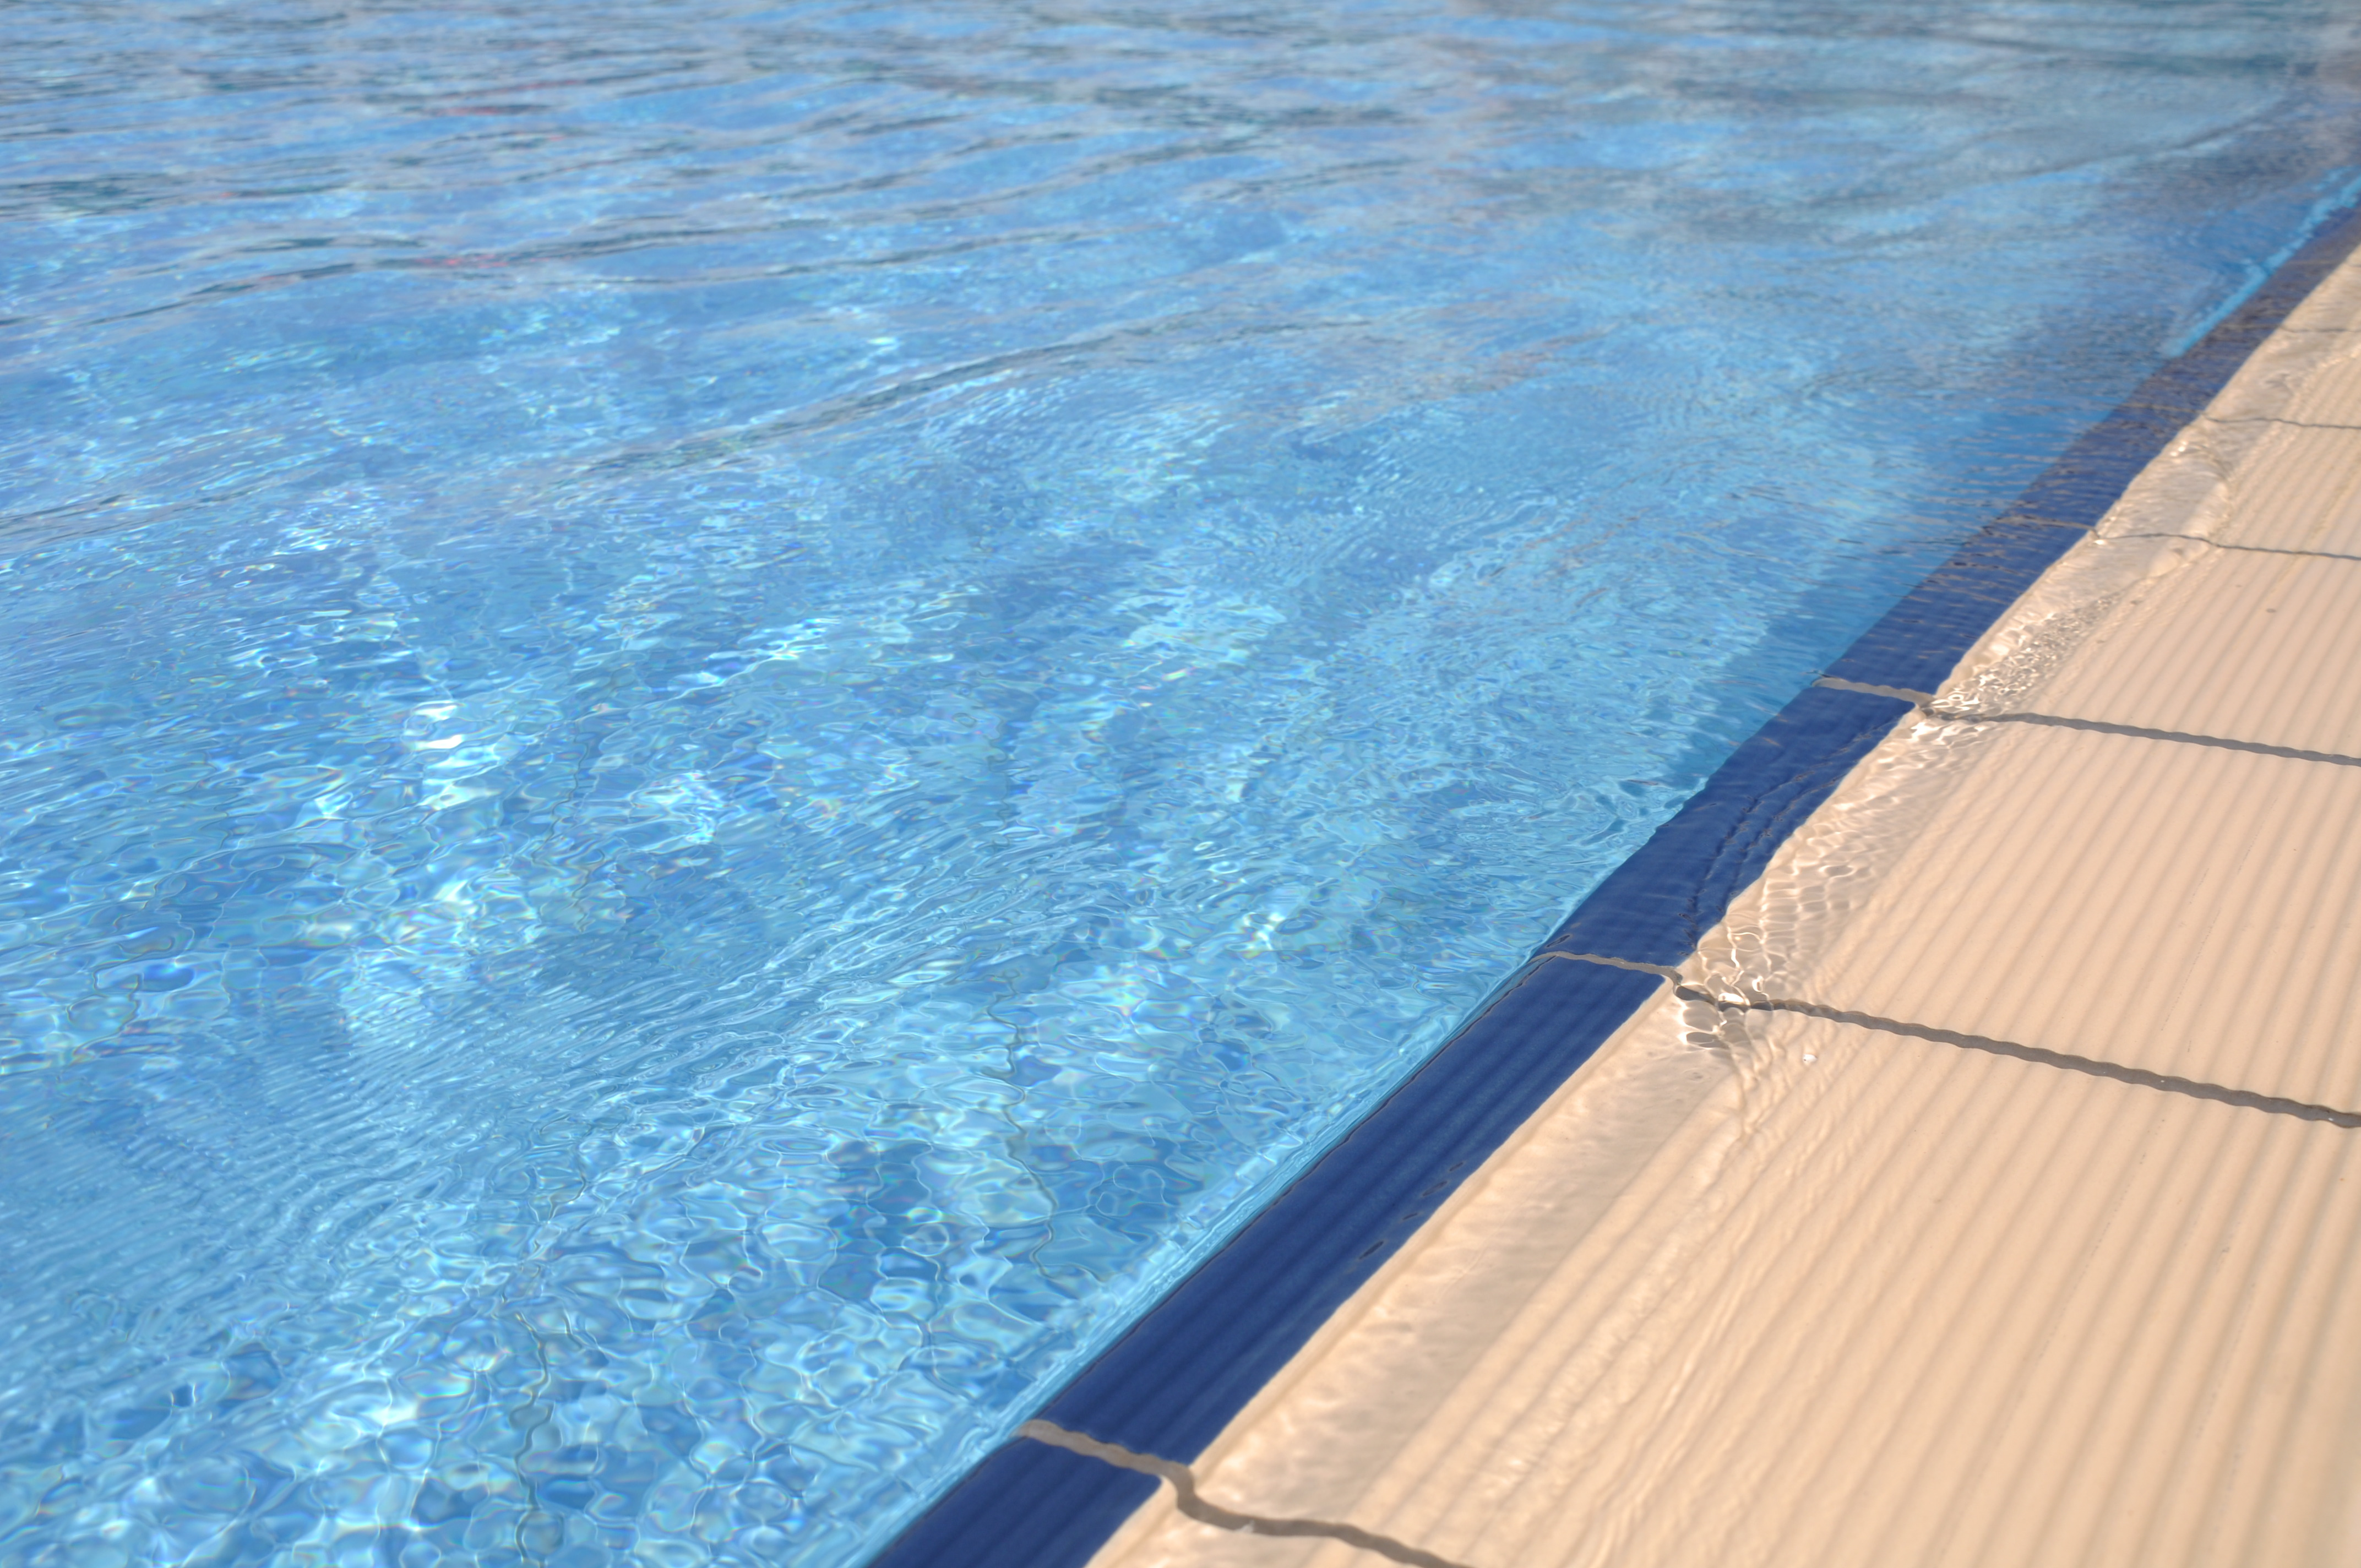 drowning and swimming pools The summer months are a perfect time for swimming, but accidental drowning is a risk contact our philadelphia personal injury lawyers for a consultation.